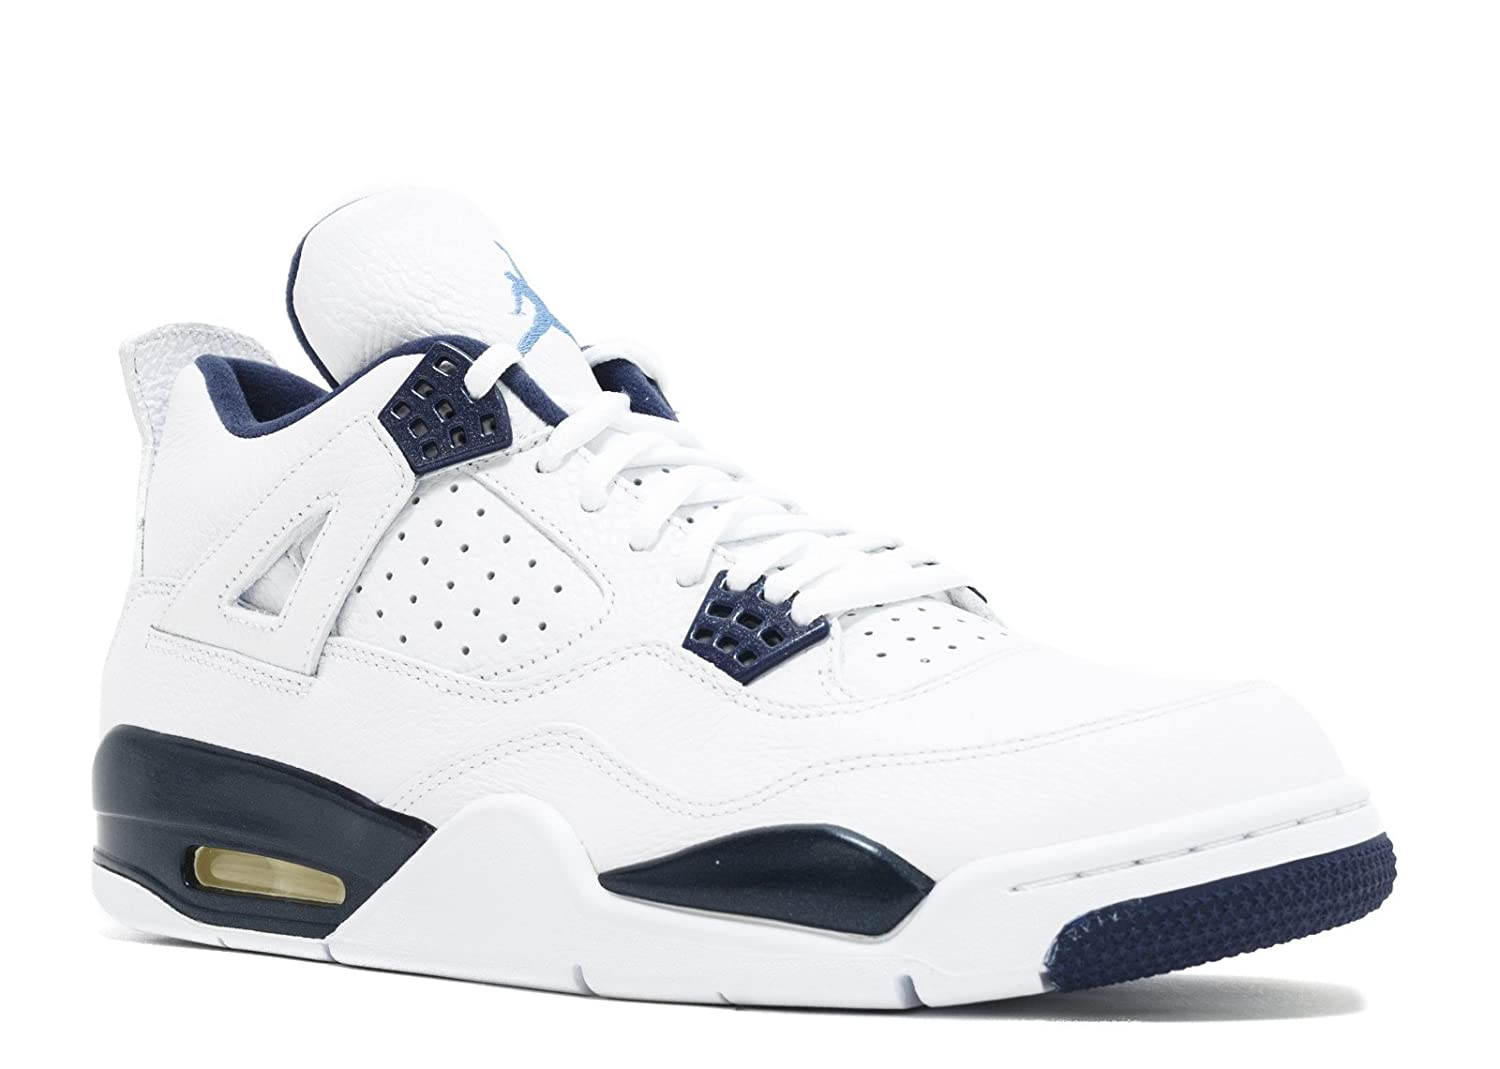 new arrival 4c414 de9f0 Amazon.com   AIR Jordan 4 Retro LS -  Legend Blue  -314254-107   Basketball